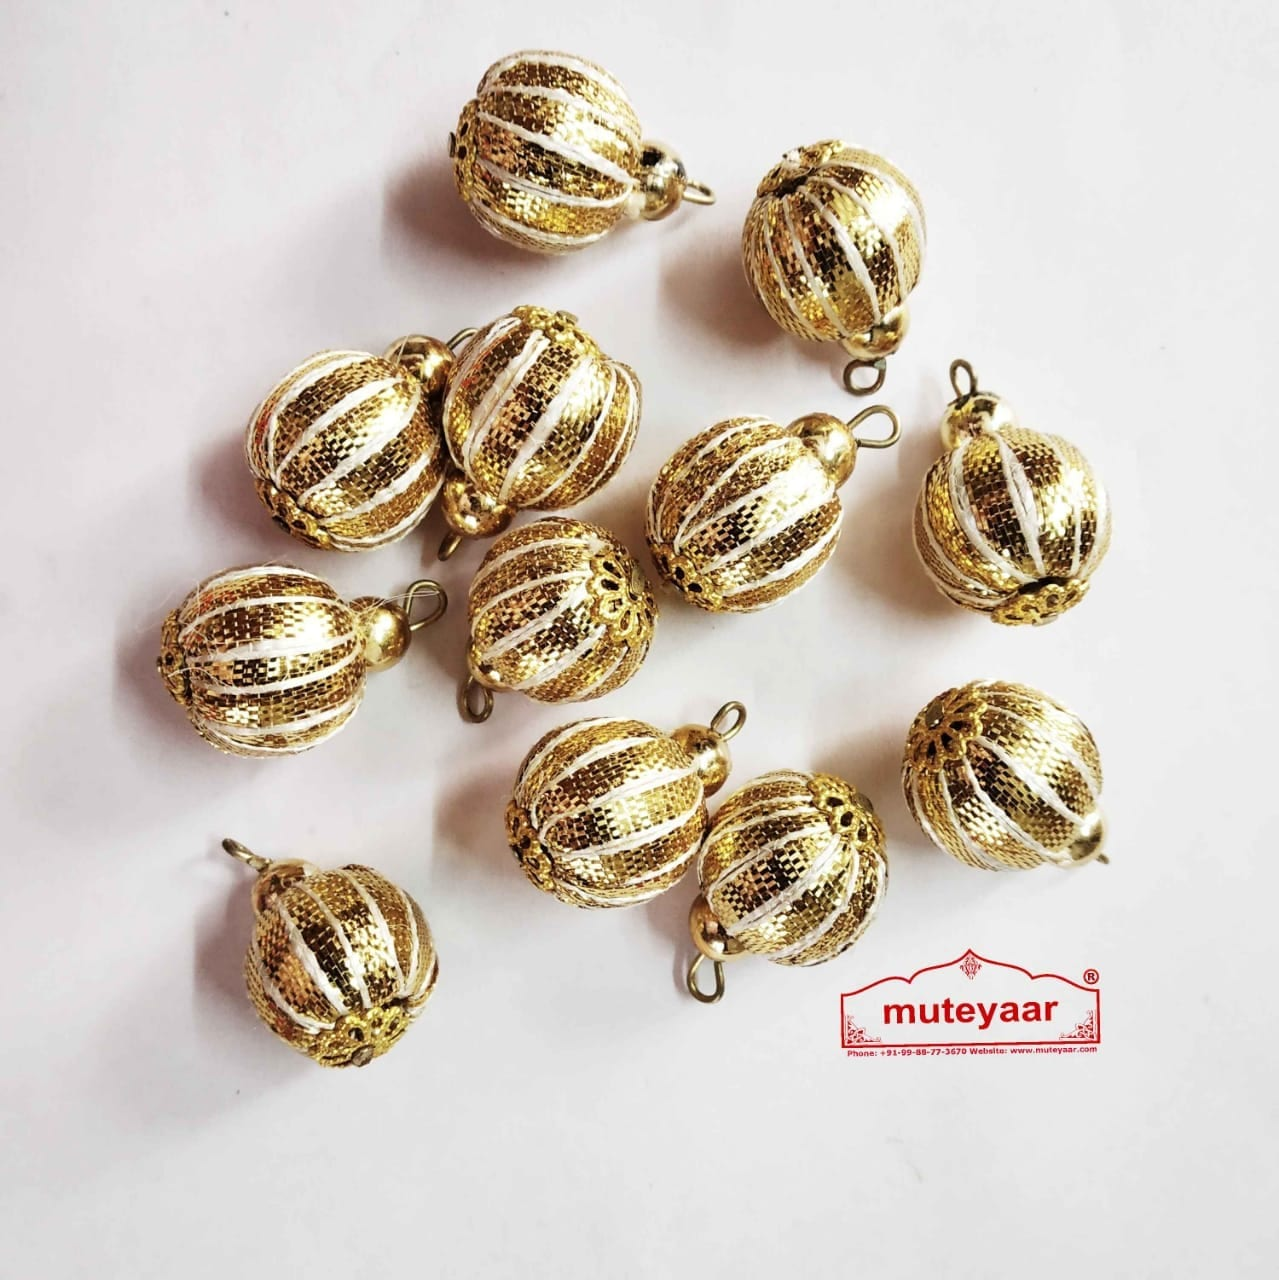 12 pieces Lot of Golden Ball Gota Patti Latkans Dangle Size 20 mm LK081 1